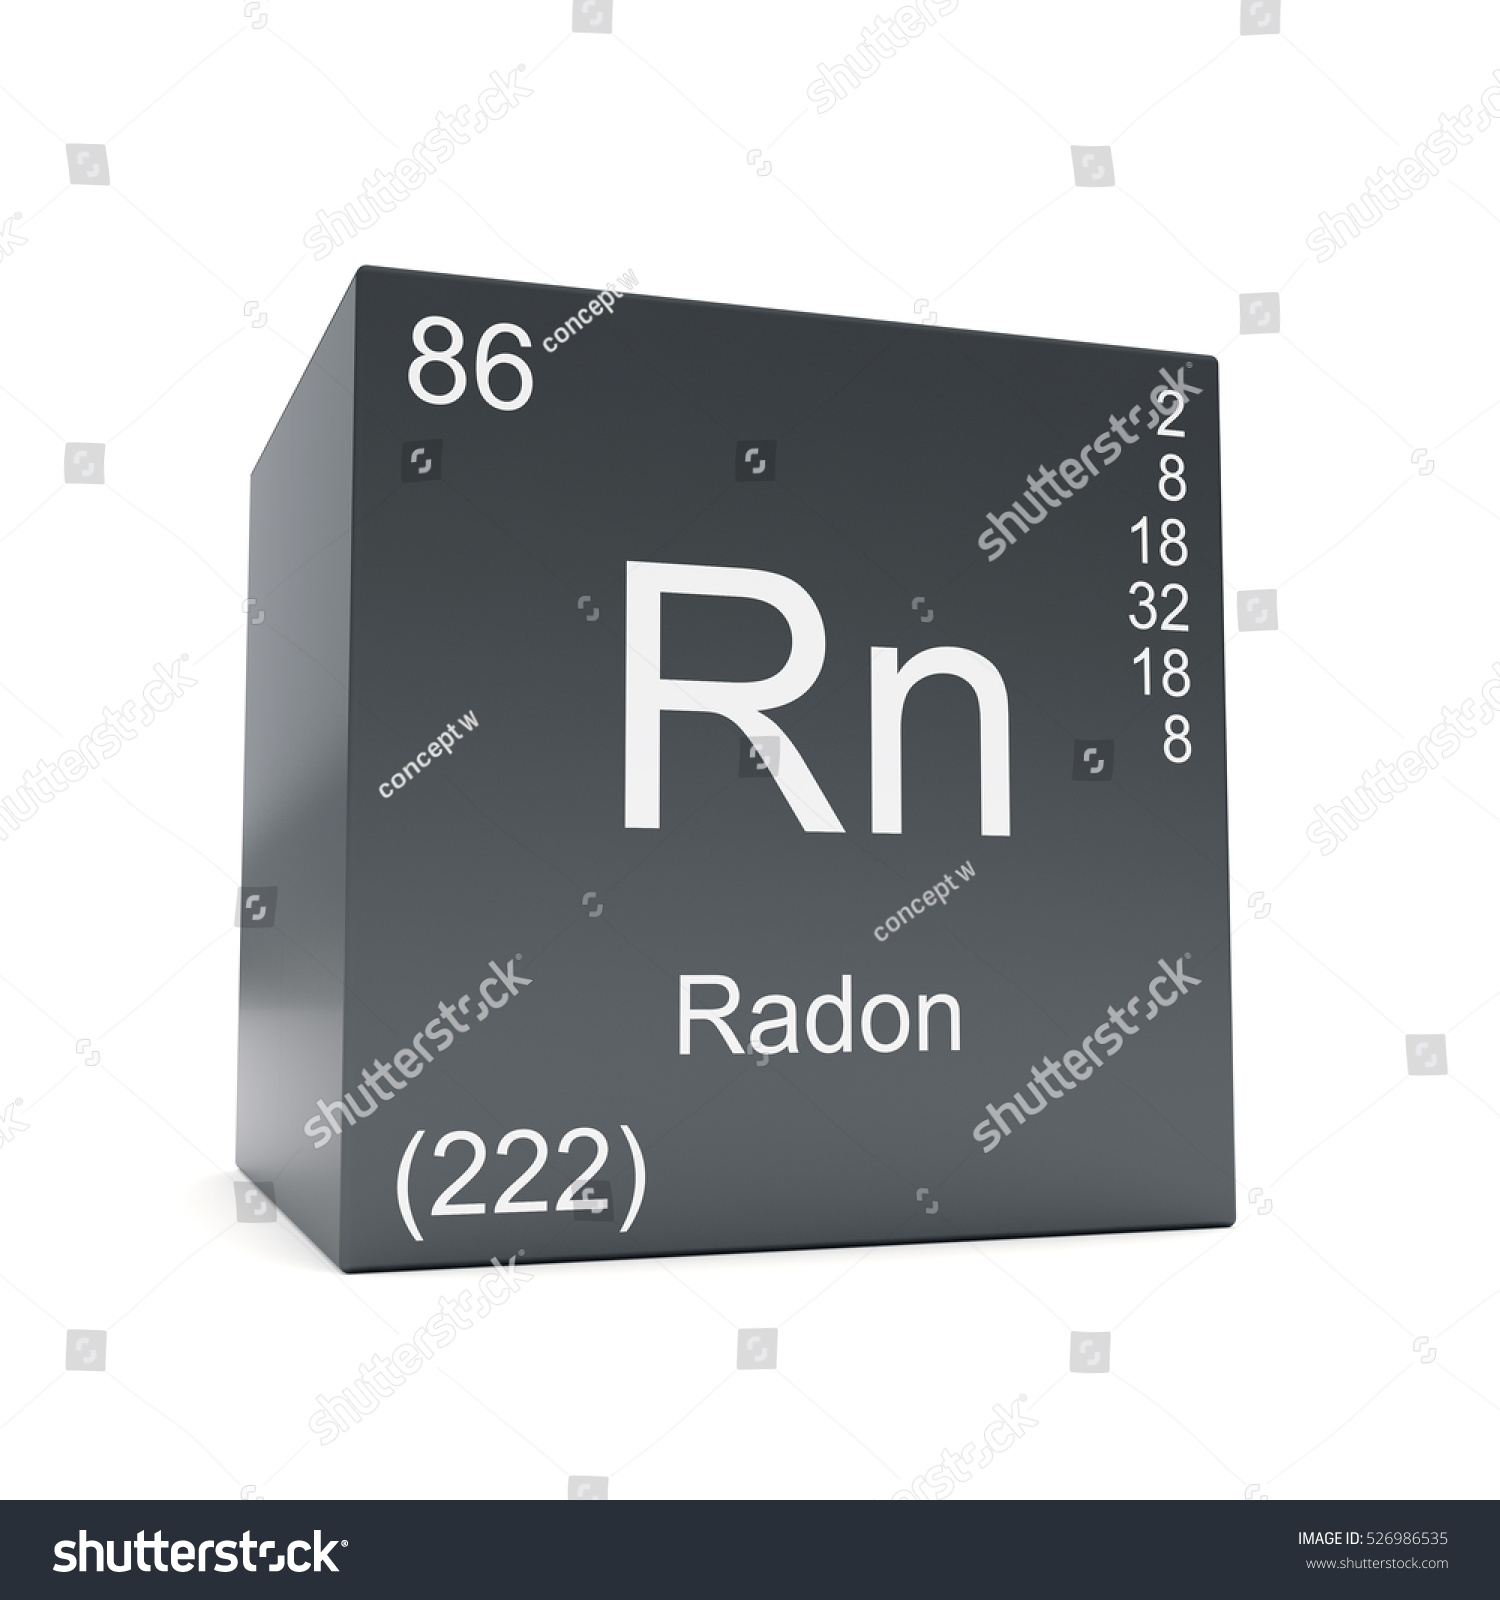 Radon chemical element symbol periodic table stock illustration radon chemical element symbol from the periodic table displayed on black cube 3d render buycottarizona